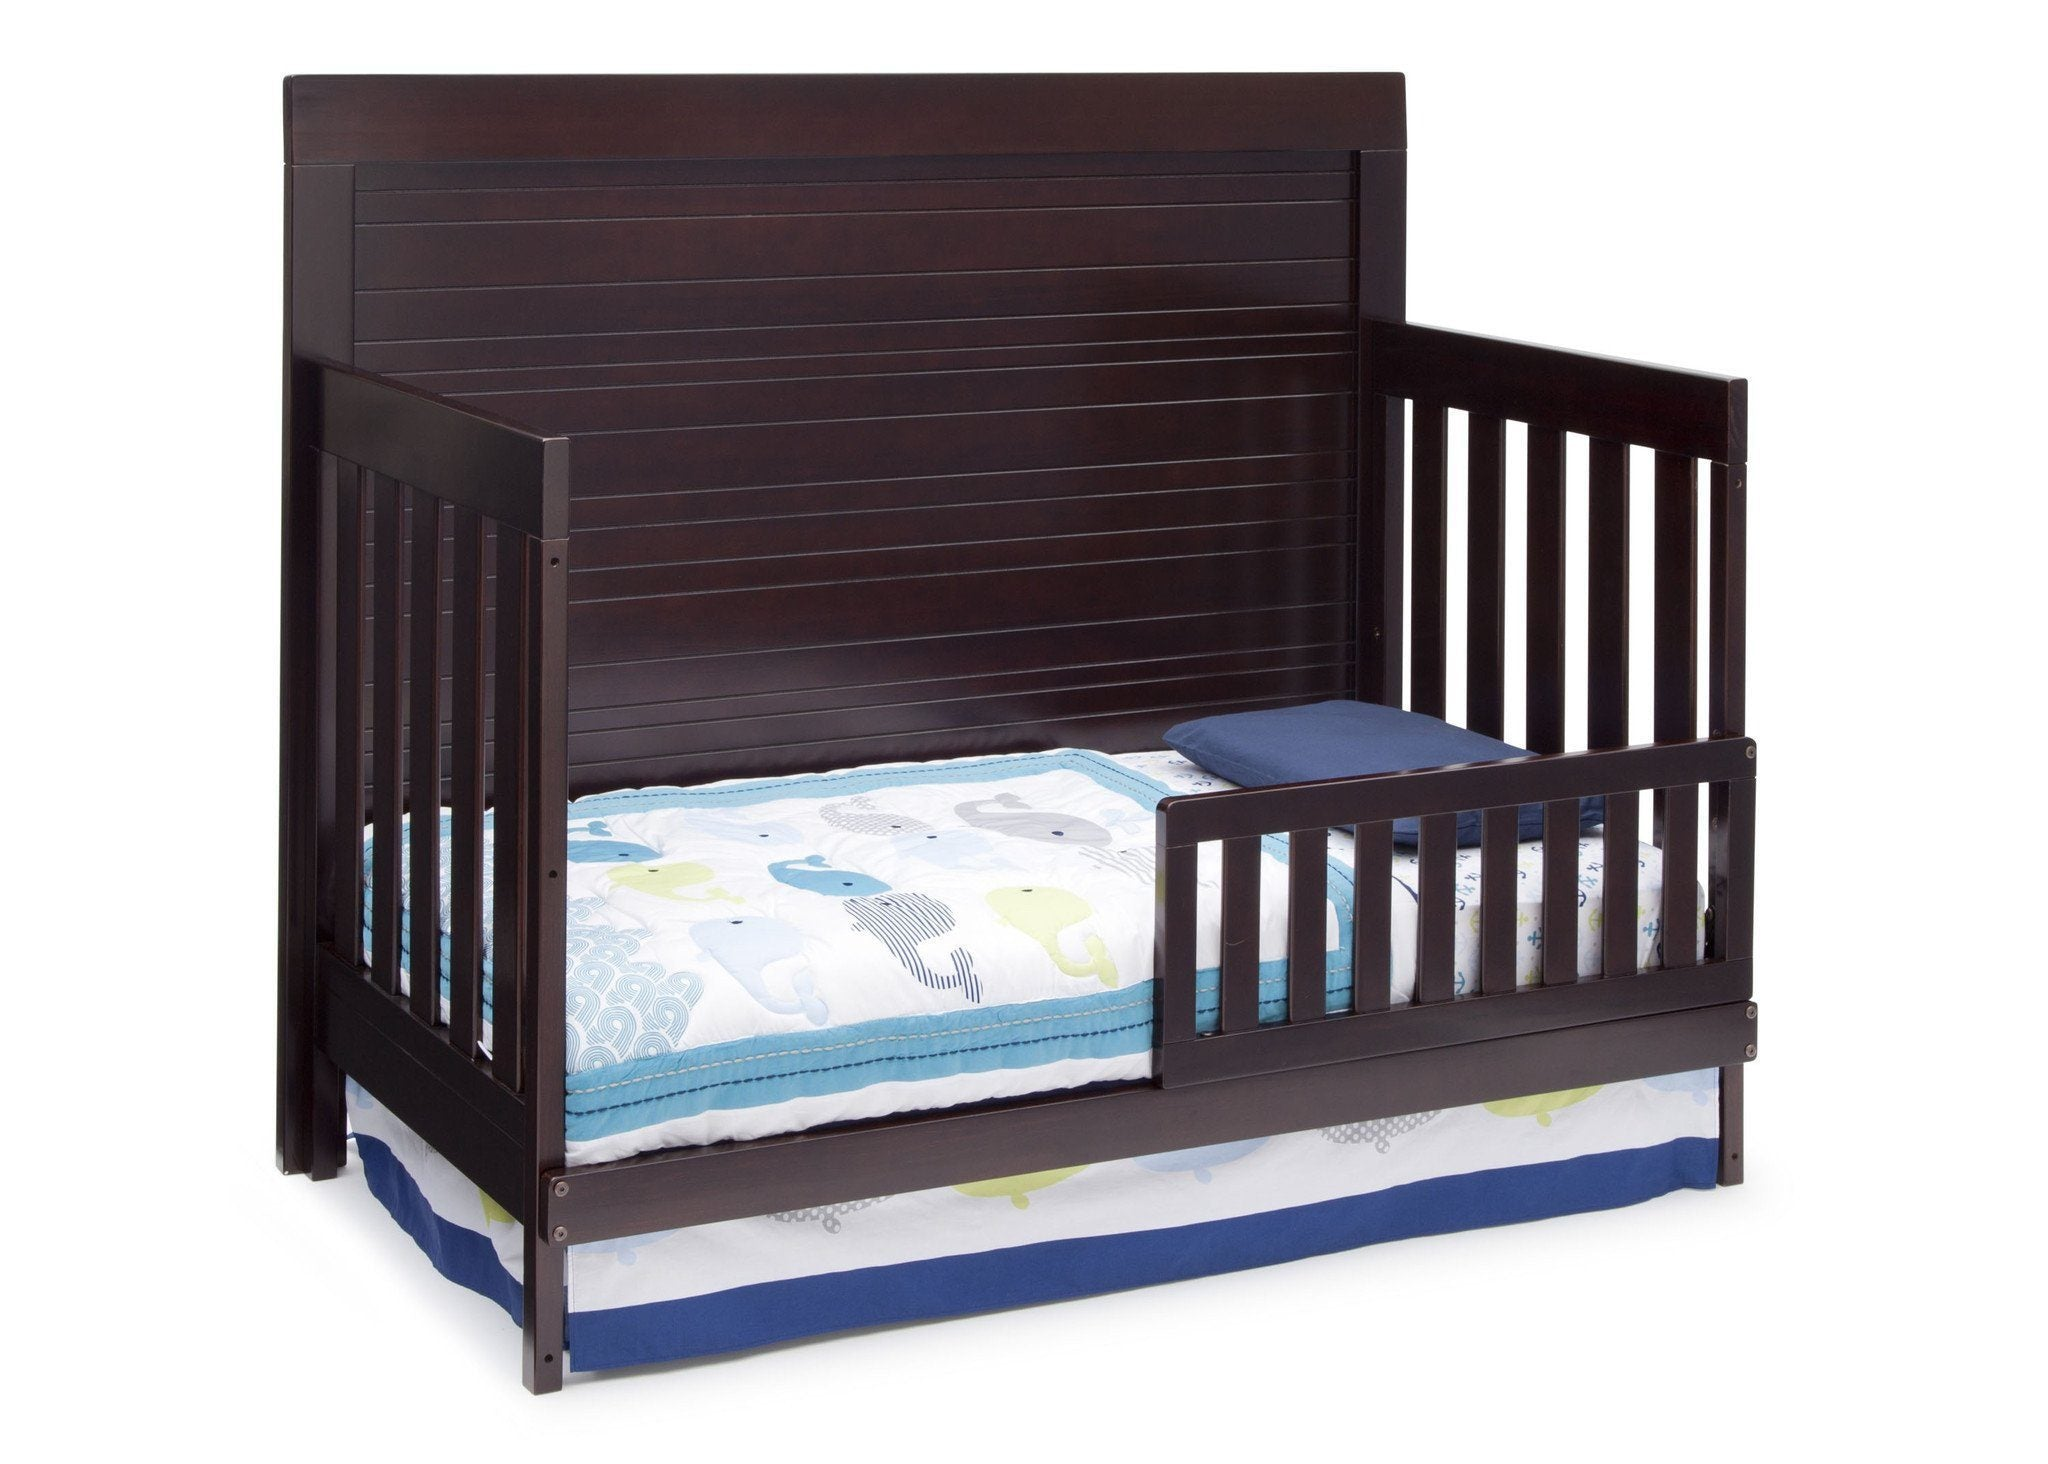 Simmons Kids Black Espresso (907) Simmons Kids Rowen Crib (320180), Side View with Toddler Bed Conversion b3b